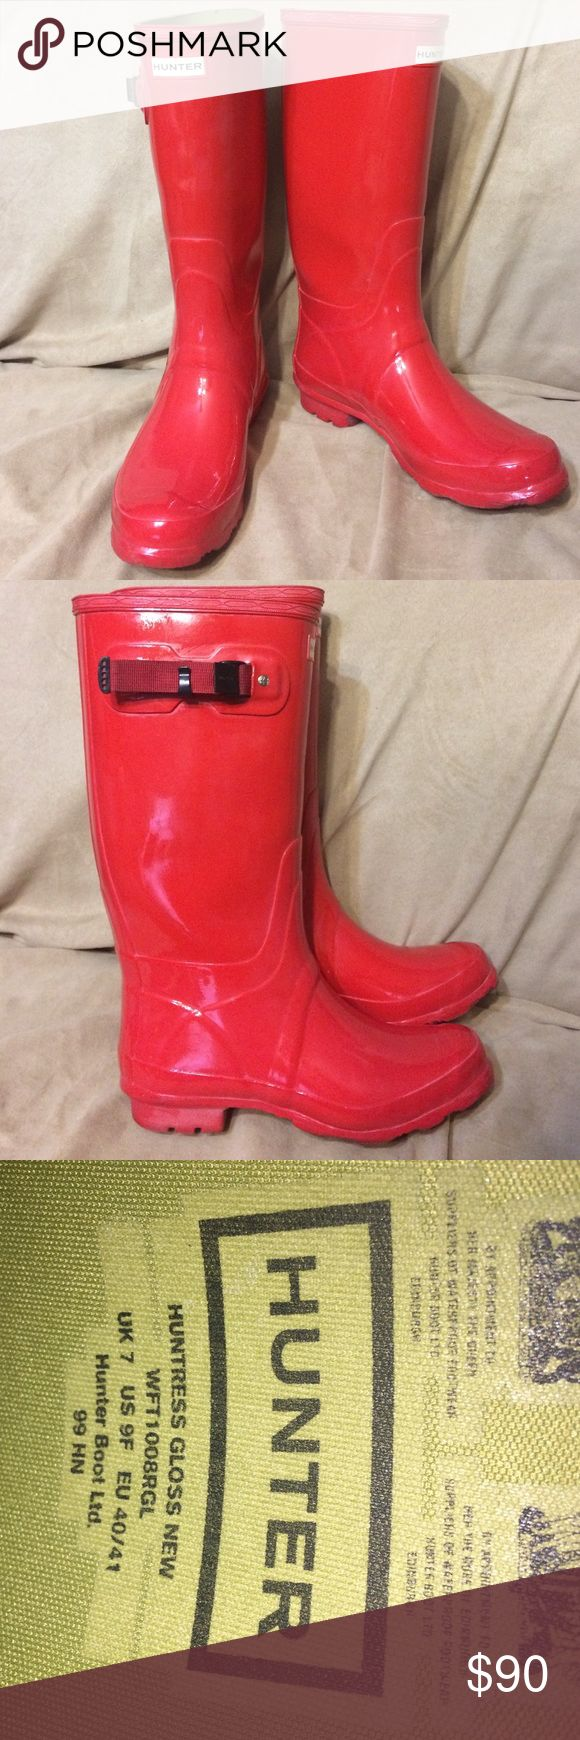 Wide Calf Glossy Red Hunter Boots Sz. 9 Gently used wide calf Hunter rain boots in the color Military Red. Selling solely because they are too large for me. Small amount of wear on the bottom and a small scuff on the left side of the right boot. Hunter Shoes Winter & Rain Boots